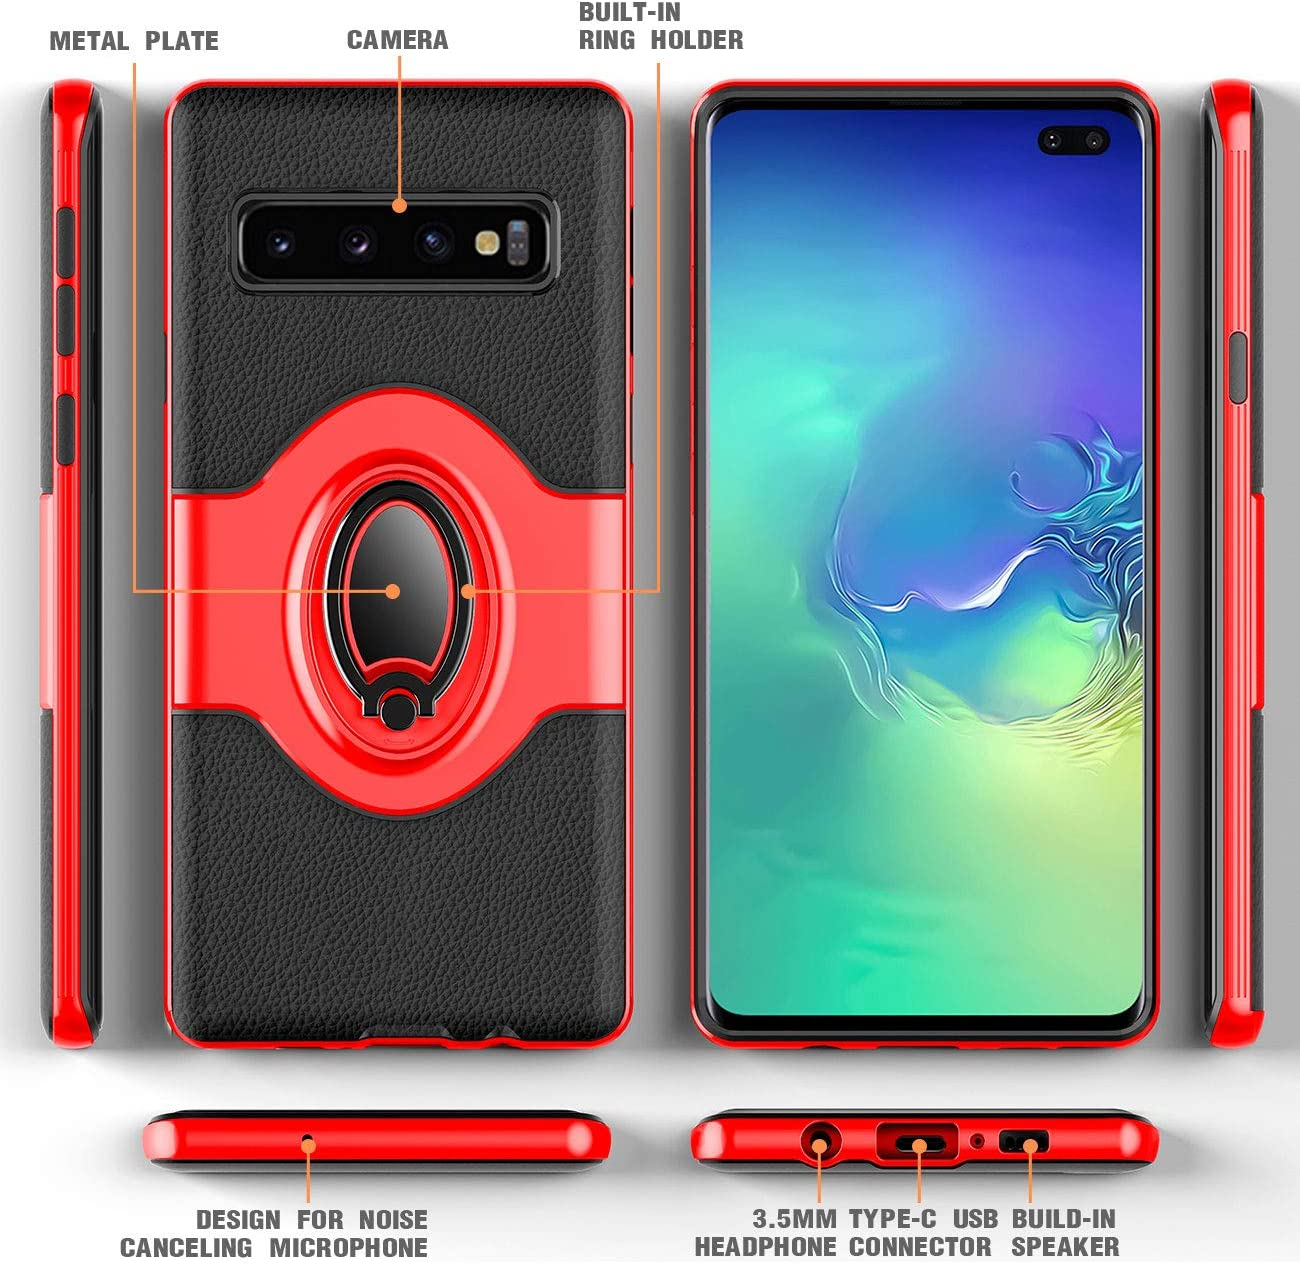 Red eSamcore Ring Holder Kickstand Cases Dashboard Magnetic Phone Car Mount Samsung Galaxy S10 Plus Case